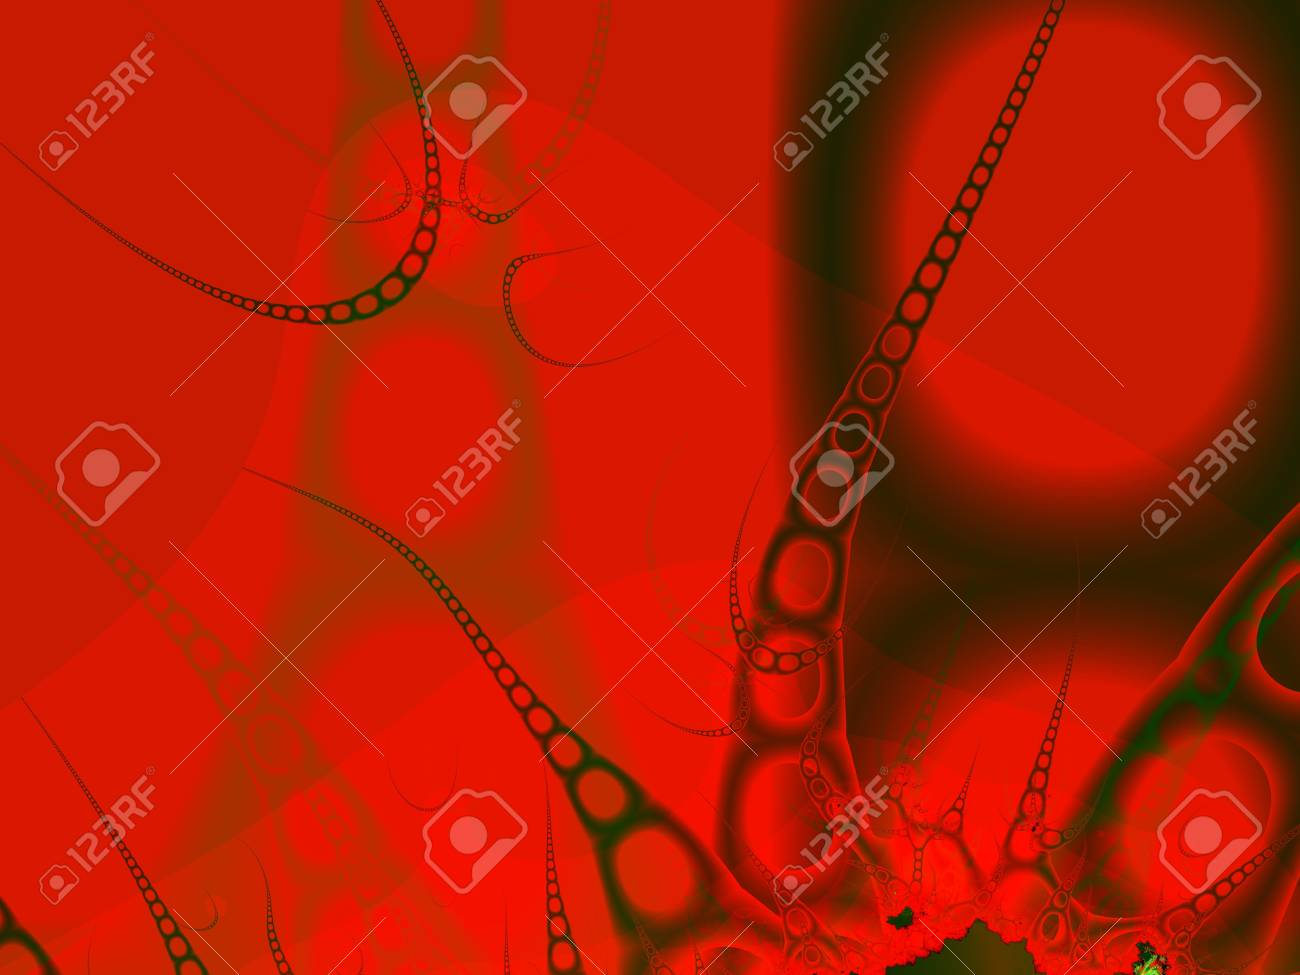 Strange being of chain form on red background. Computer-generated image Stock Photo - 5136529